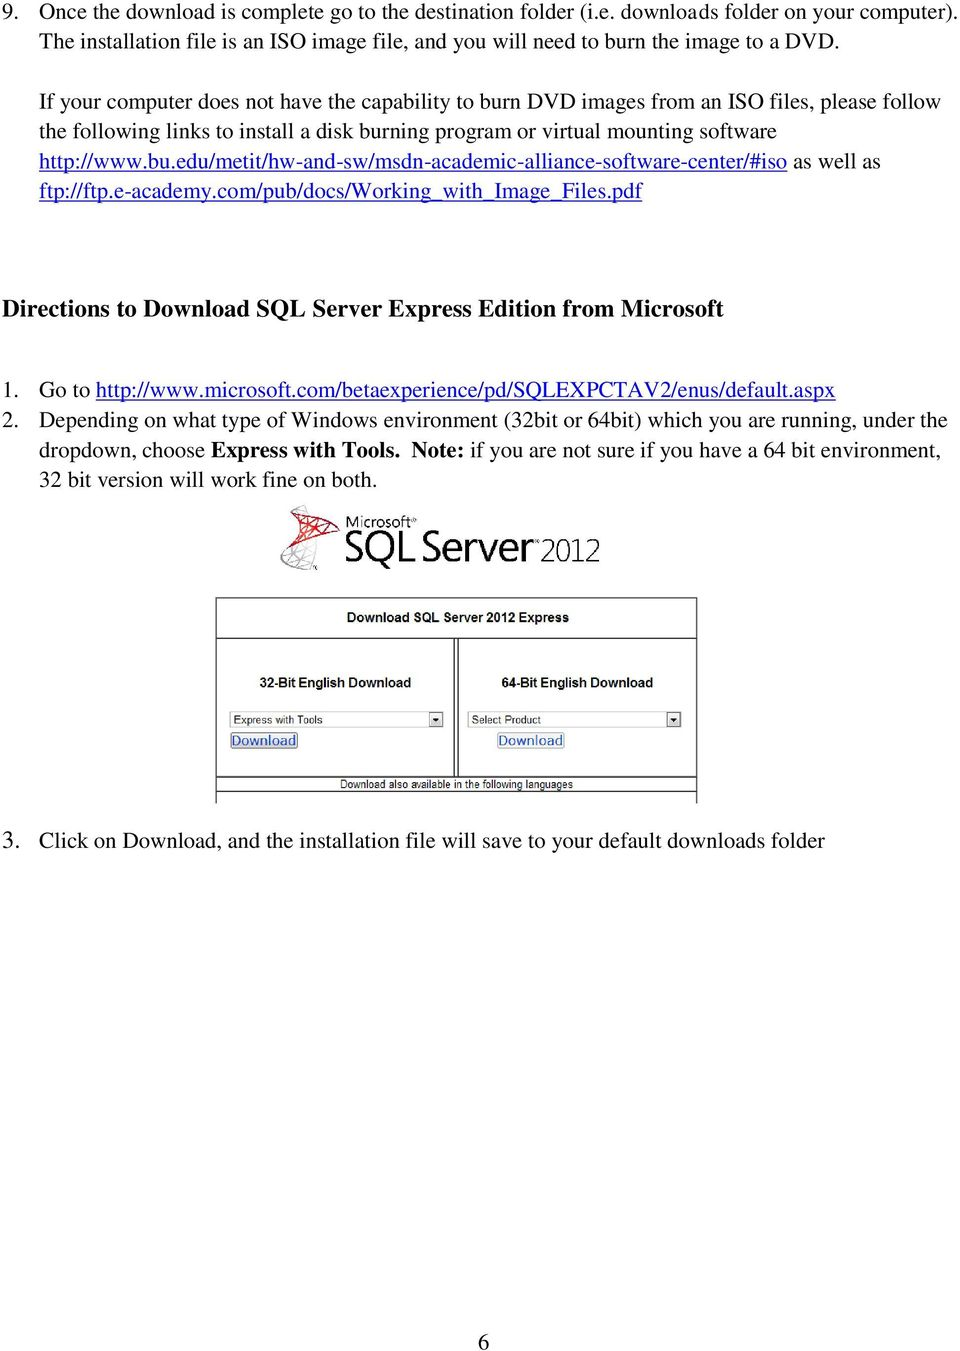 e-academy.com/pub/docs/working_with_image_files.pdf Directions to Download SQL Server Express Edition from Microsoft 1. Go to http://www.microsoft.com/betaexperience/pd/sqlexpctav2/enus/default.